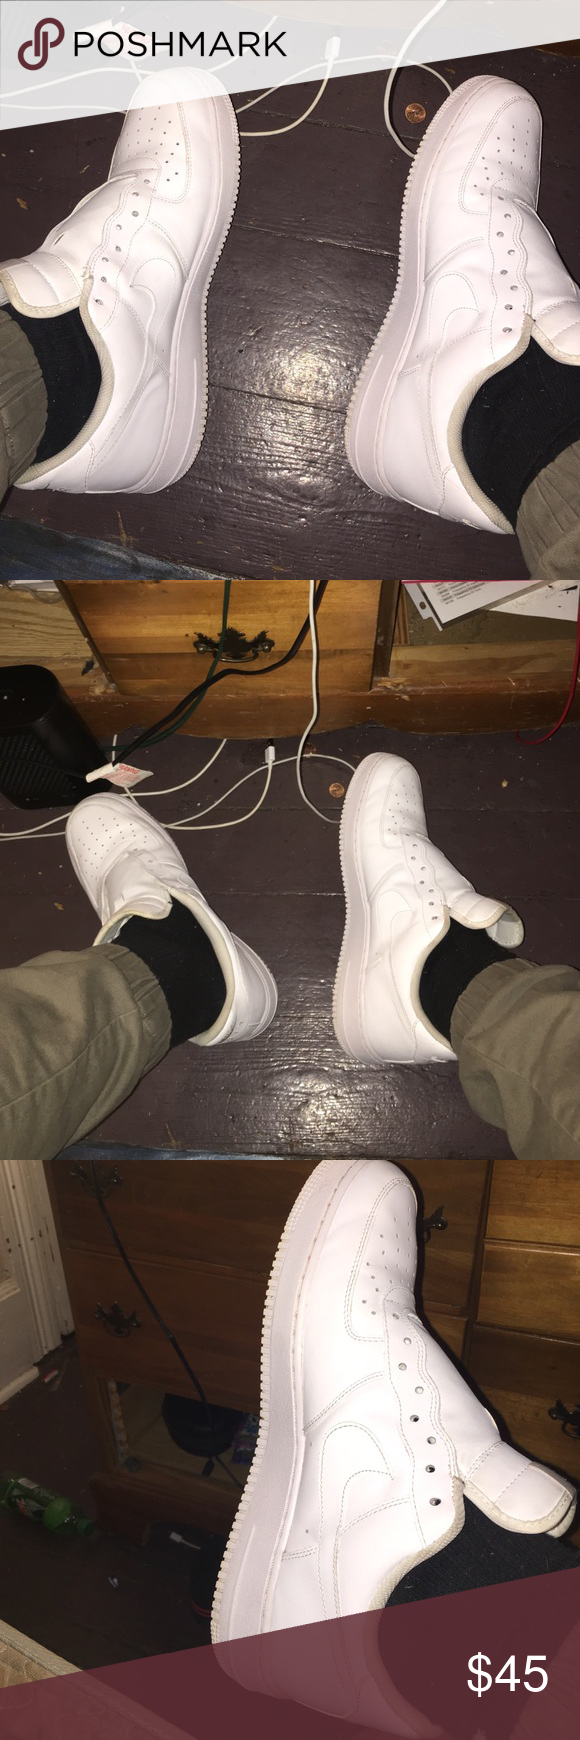 air force ones air force one shoes all white g fazos 9 10 only